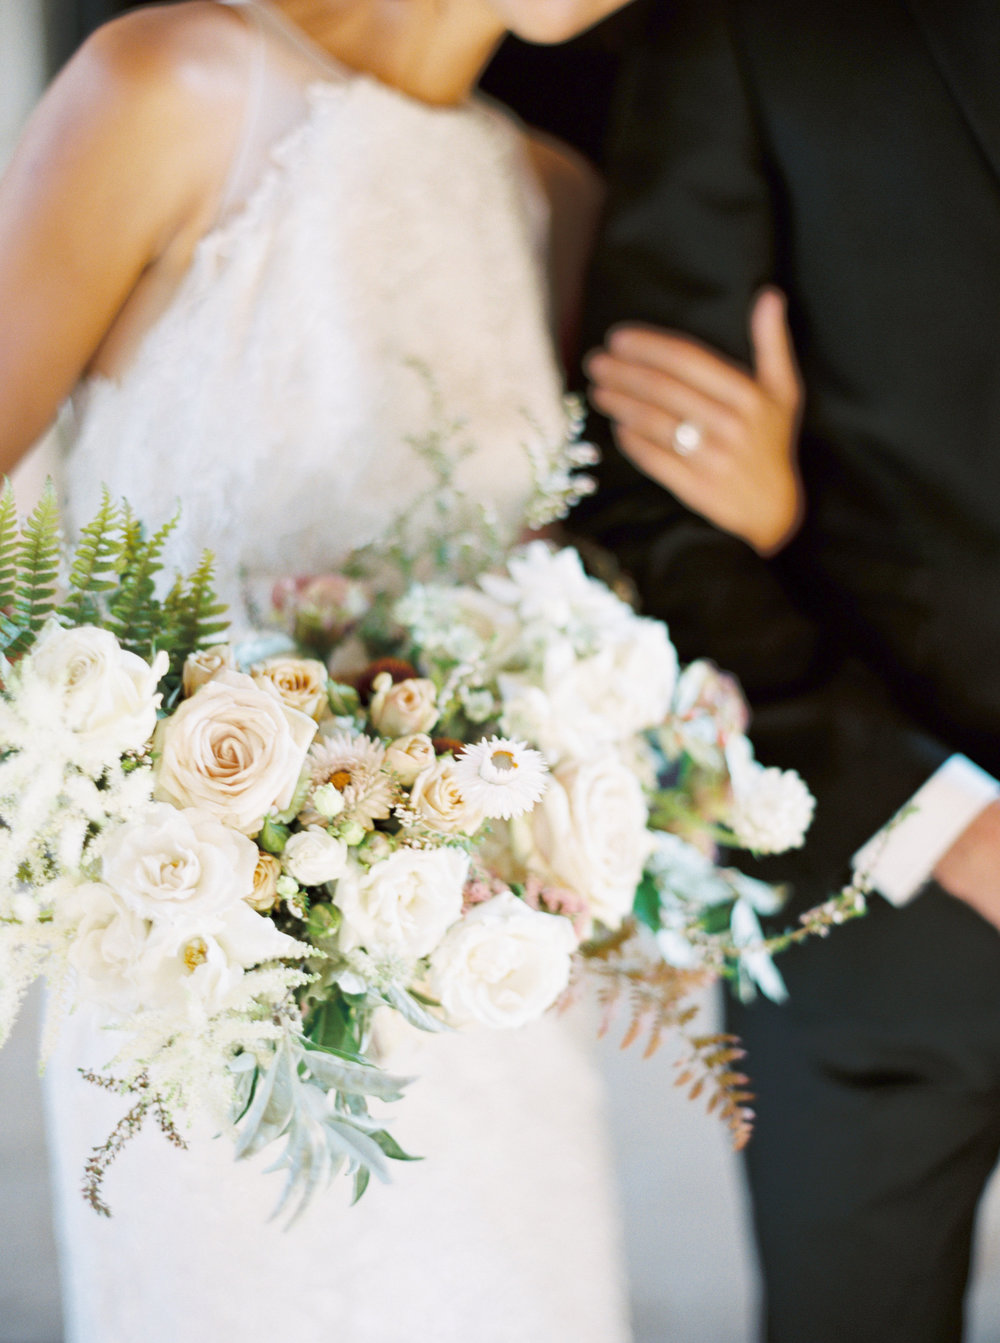 Early Mountain Vineyard Wedding - Wild Green Yonder bouquet